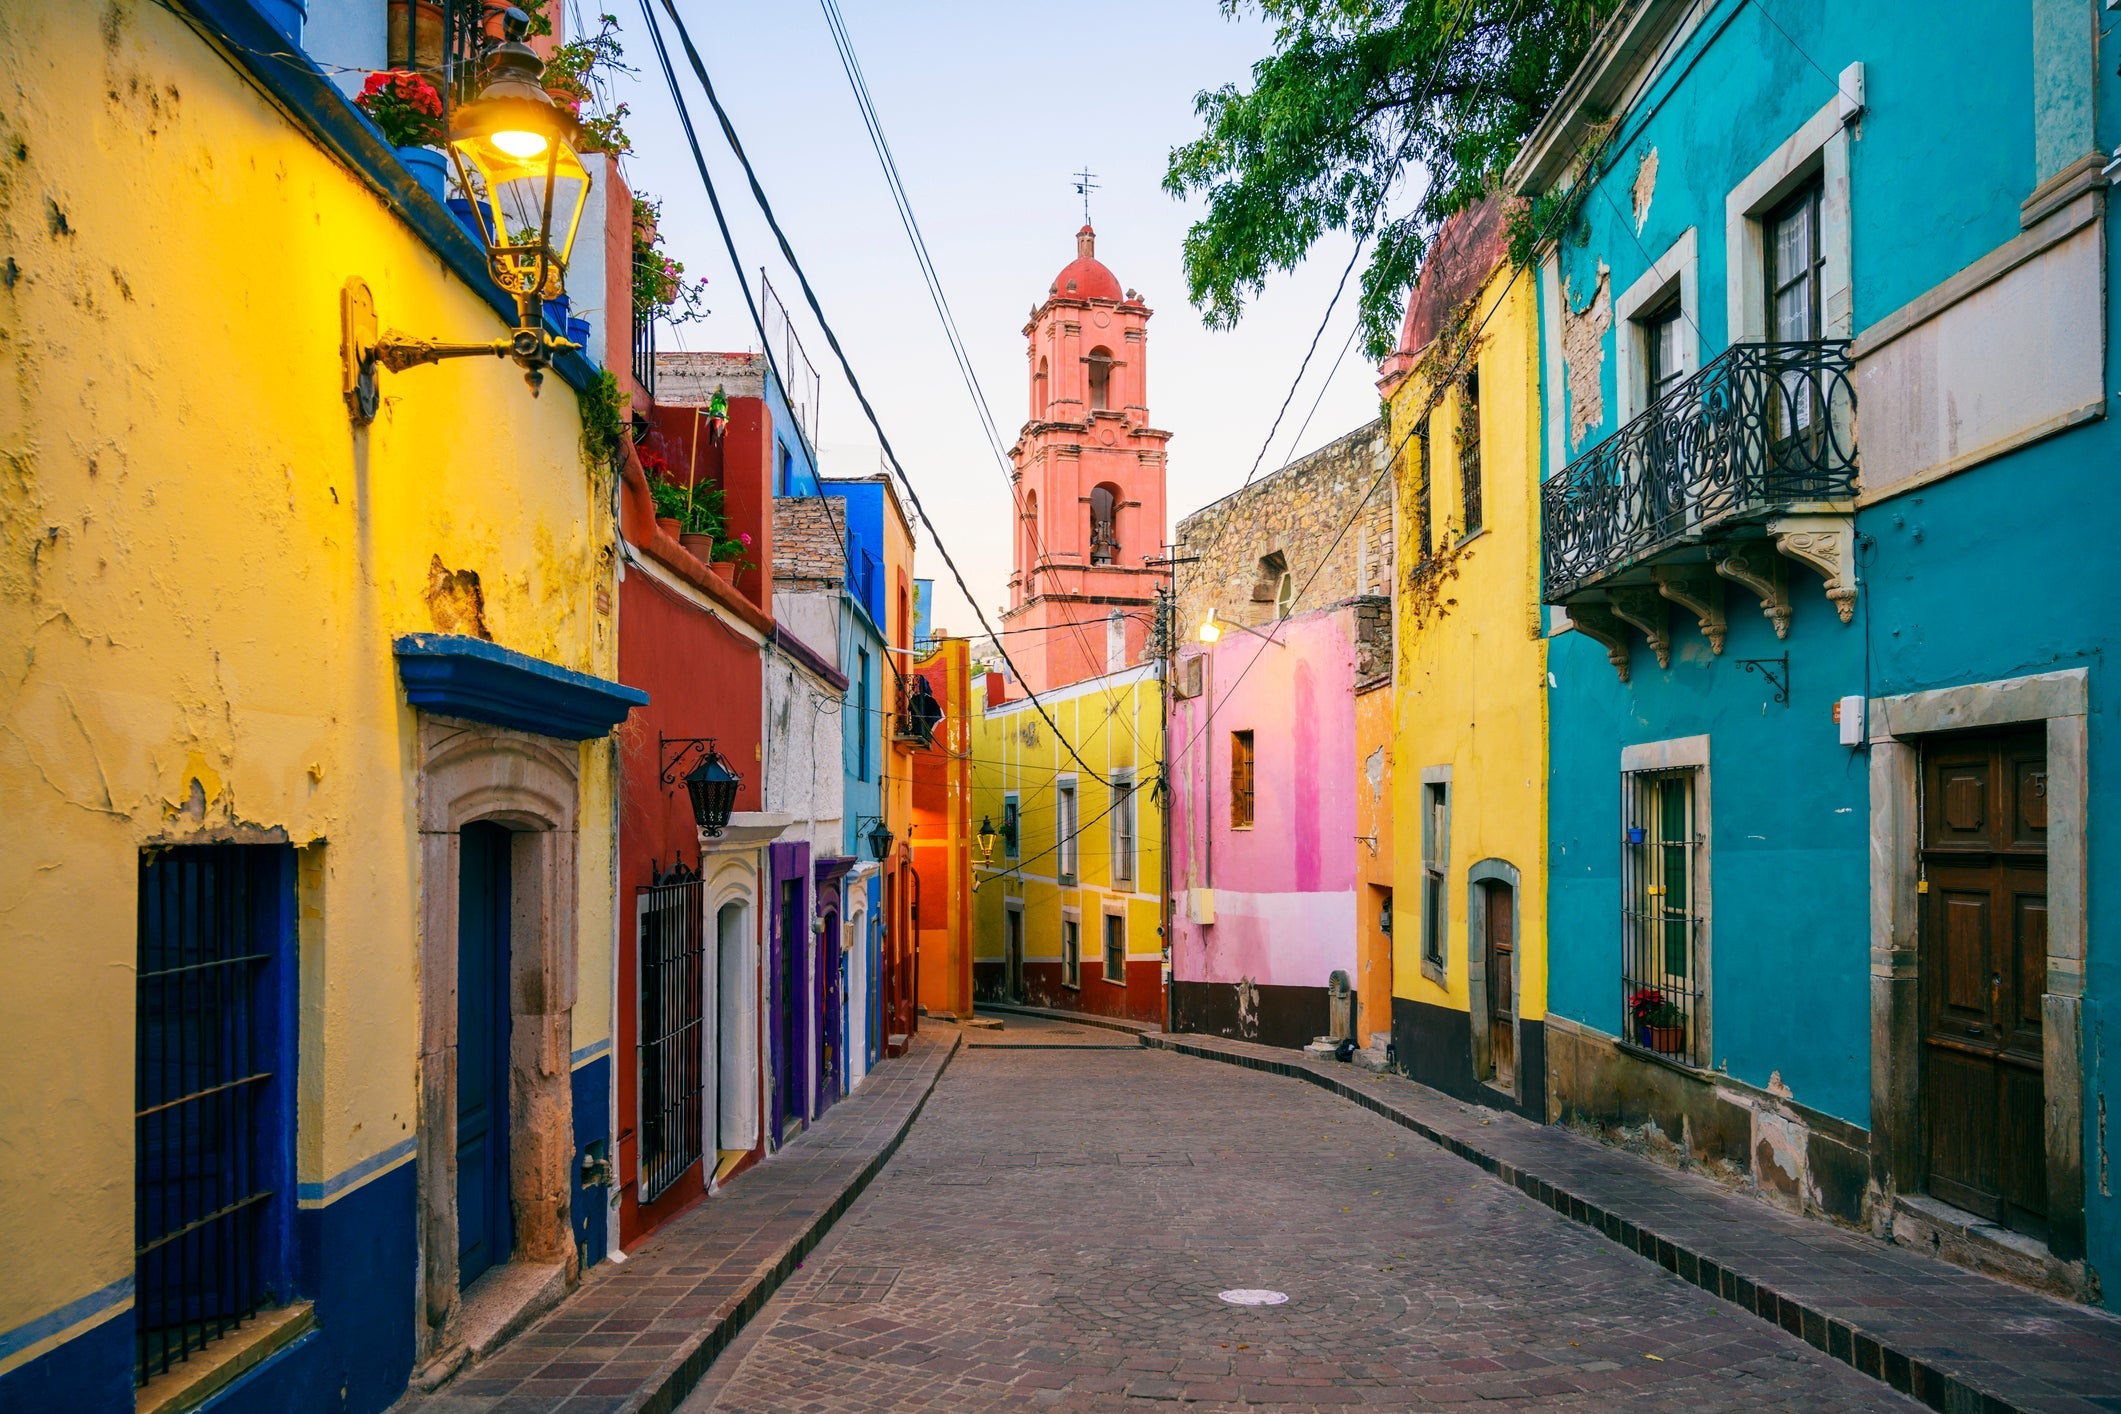 13 of the most beautiful villages and small towns in Mexico - The Points Guy